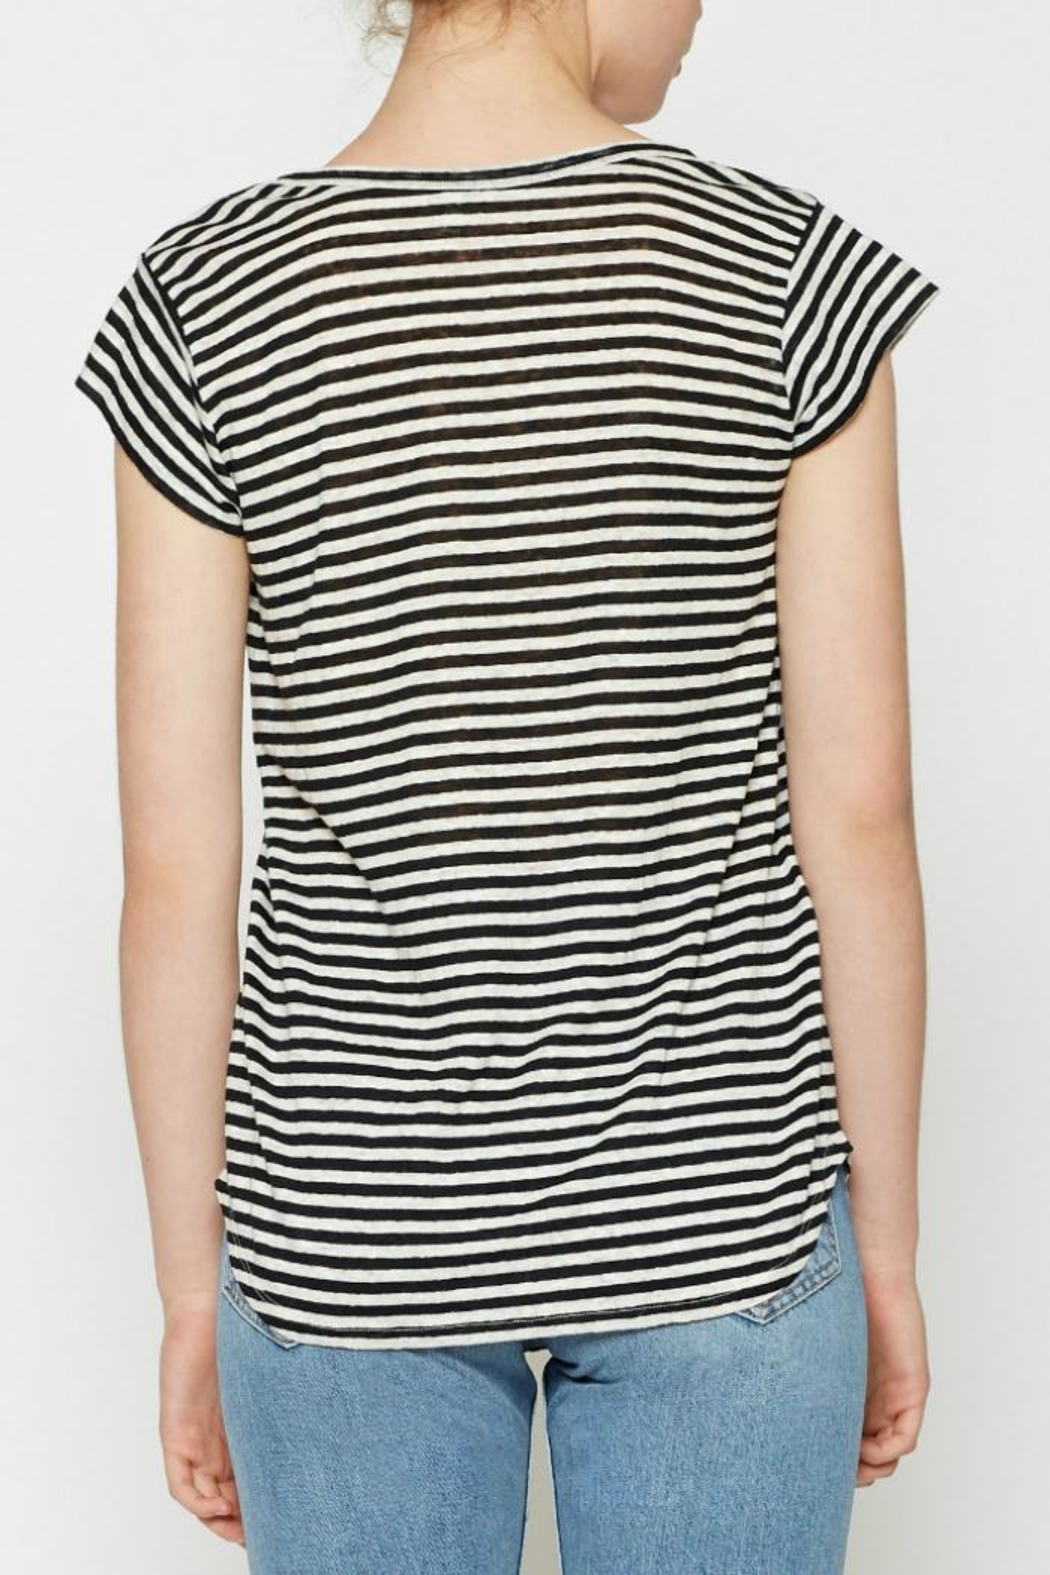 Joie Neyo Linen T-Shirt - Side Cropped Image